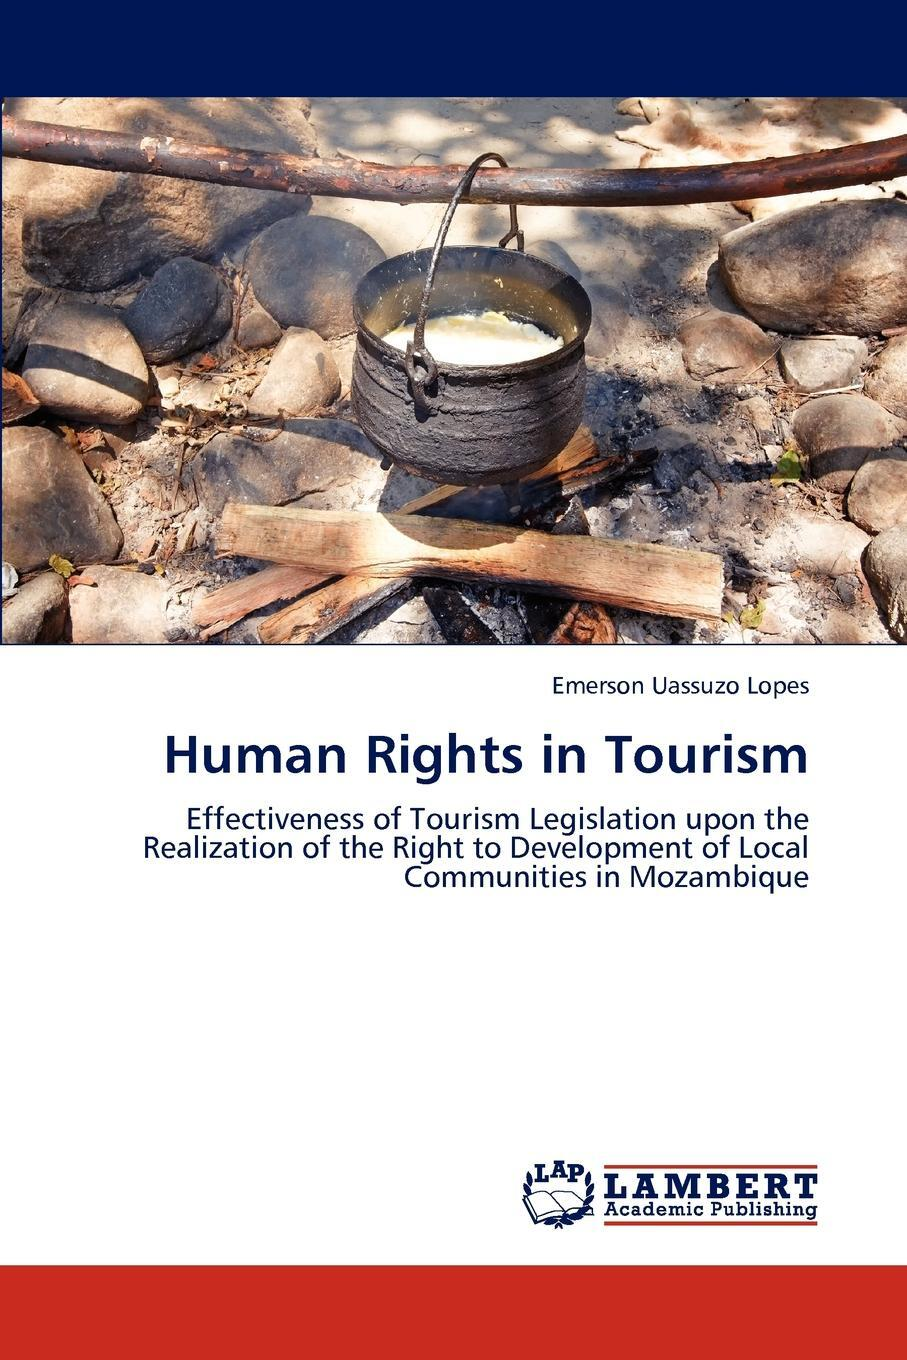 Human Rights in Tourism. Emerson Uassuzo Lopes